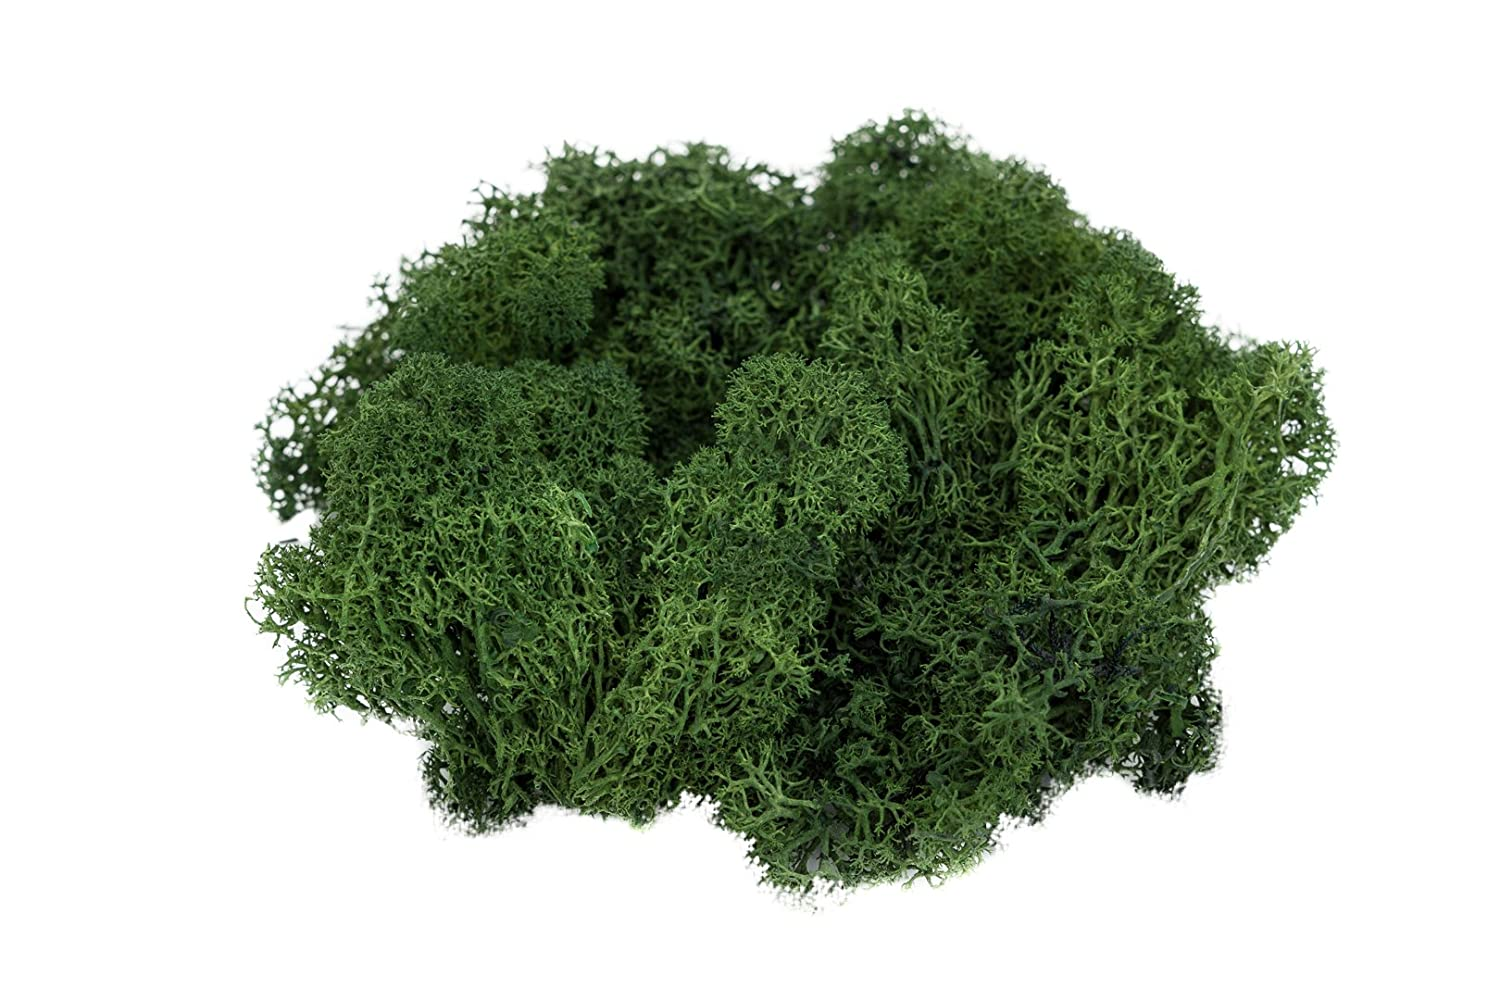 for Fairy Gardens 2 Ounces Spring Green Moss Terrariums Reindeer Moss Preserved or Any Craft or Floral Project     Plus Free Nautical Ebook by Joseph Rains